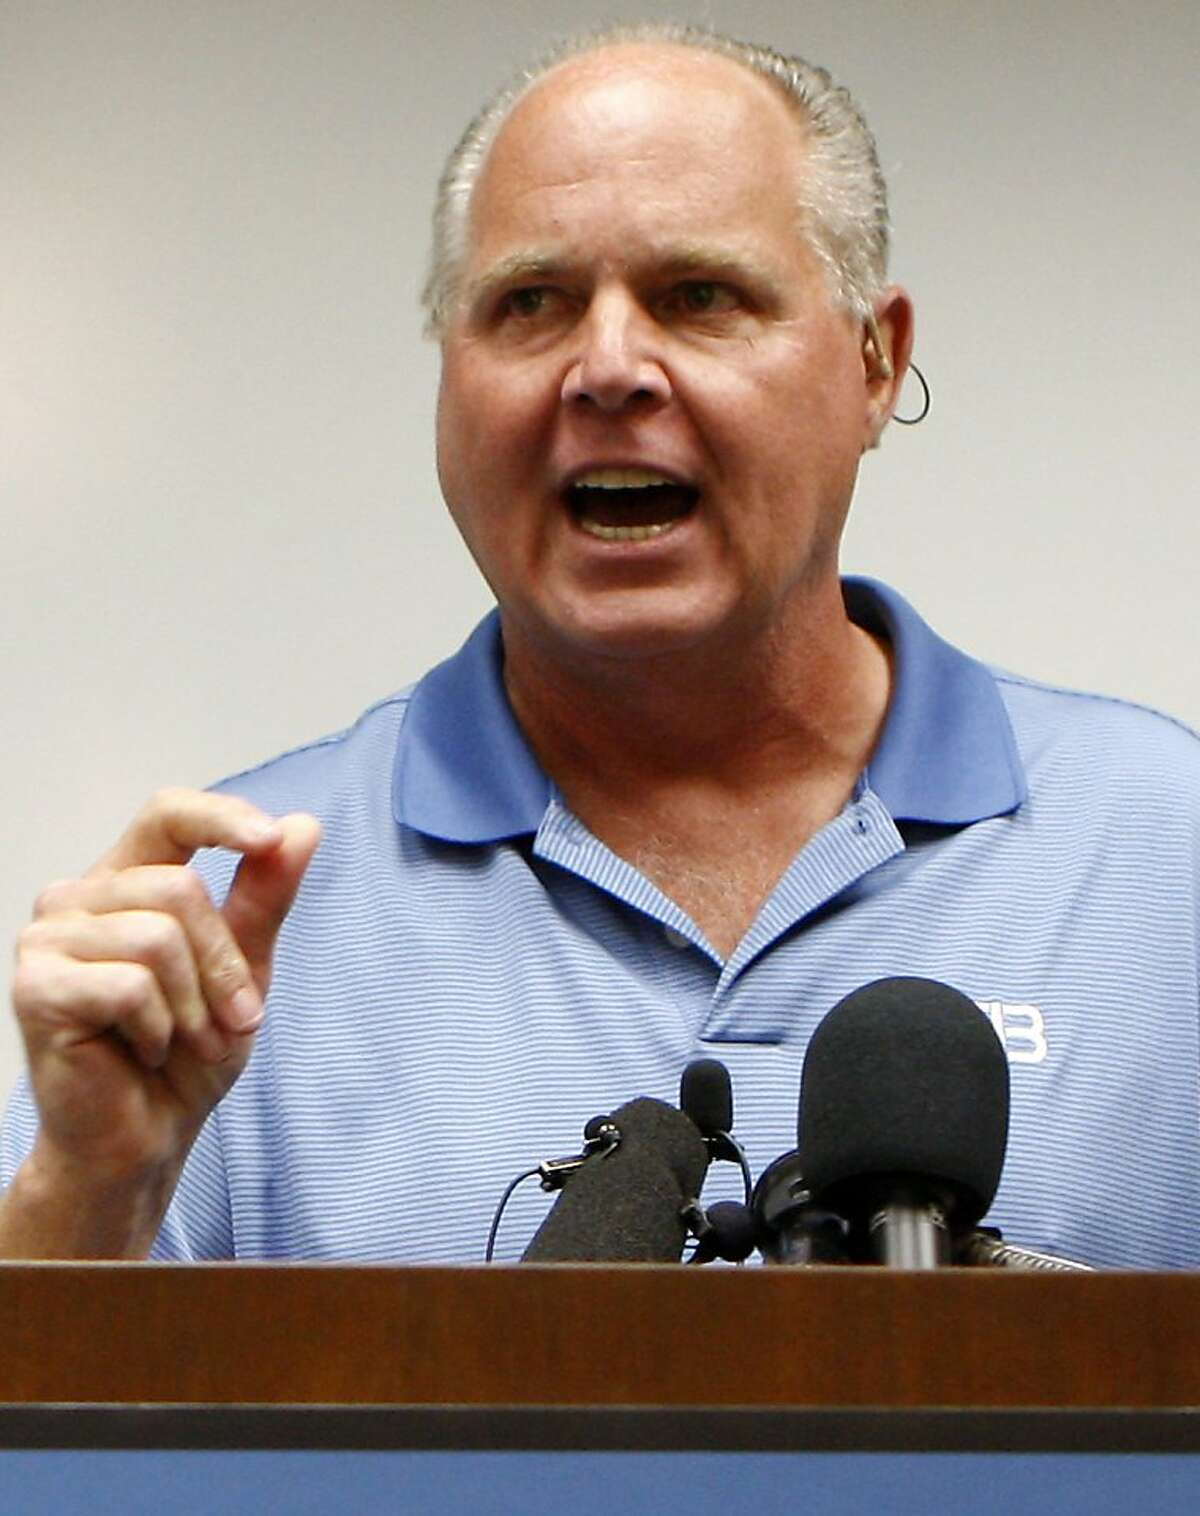 """FILE - In this Jan. 1, 2010 file photo, conservative talk show host Rush Limbaugh speaks during a news conference at The Queen's Medical Center looks on in Honolulu, after he was rushed to the hospital after experiencing chest pains during a vacation. Limbaugh, who for a quarter-century of radio dominance has gained clout and wealth with his salvos against Democrats, liberals, minorities, the poor and other disenfranchised groups. On his radio show, Limbaugh called Georgetown University student Sandra Fluke a """"slut"""" who wanted the government to subsidize her sex life. (AP Photo/Chris Carlson, file )"""